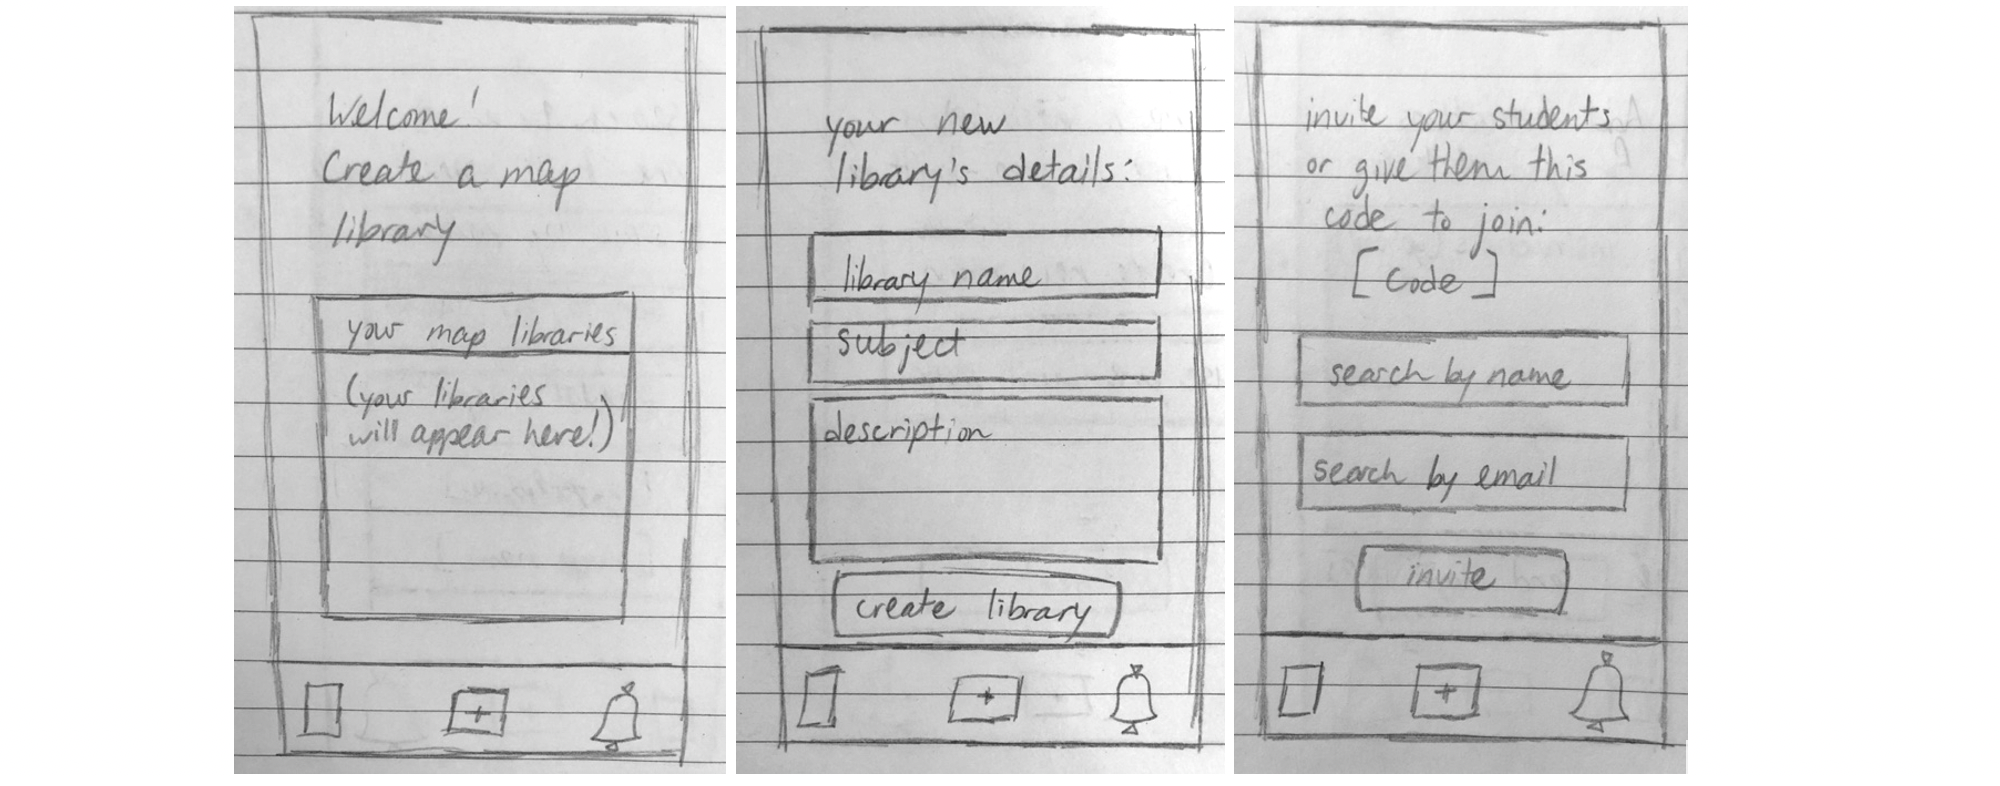 Sketches demonstrating how to create a map library on Cartograph